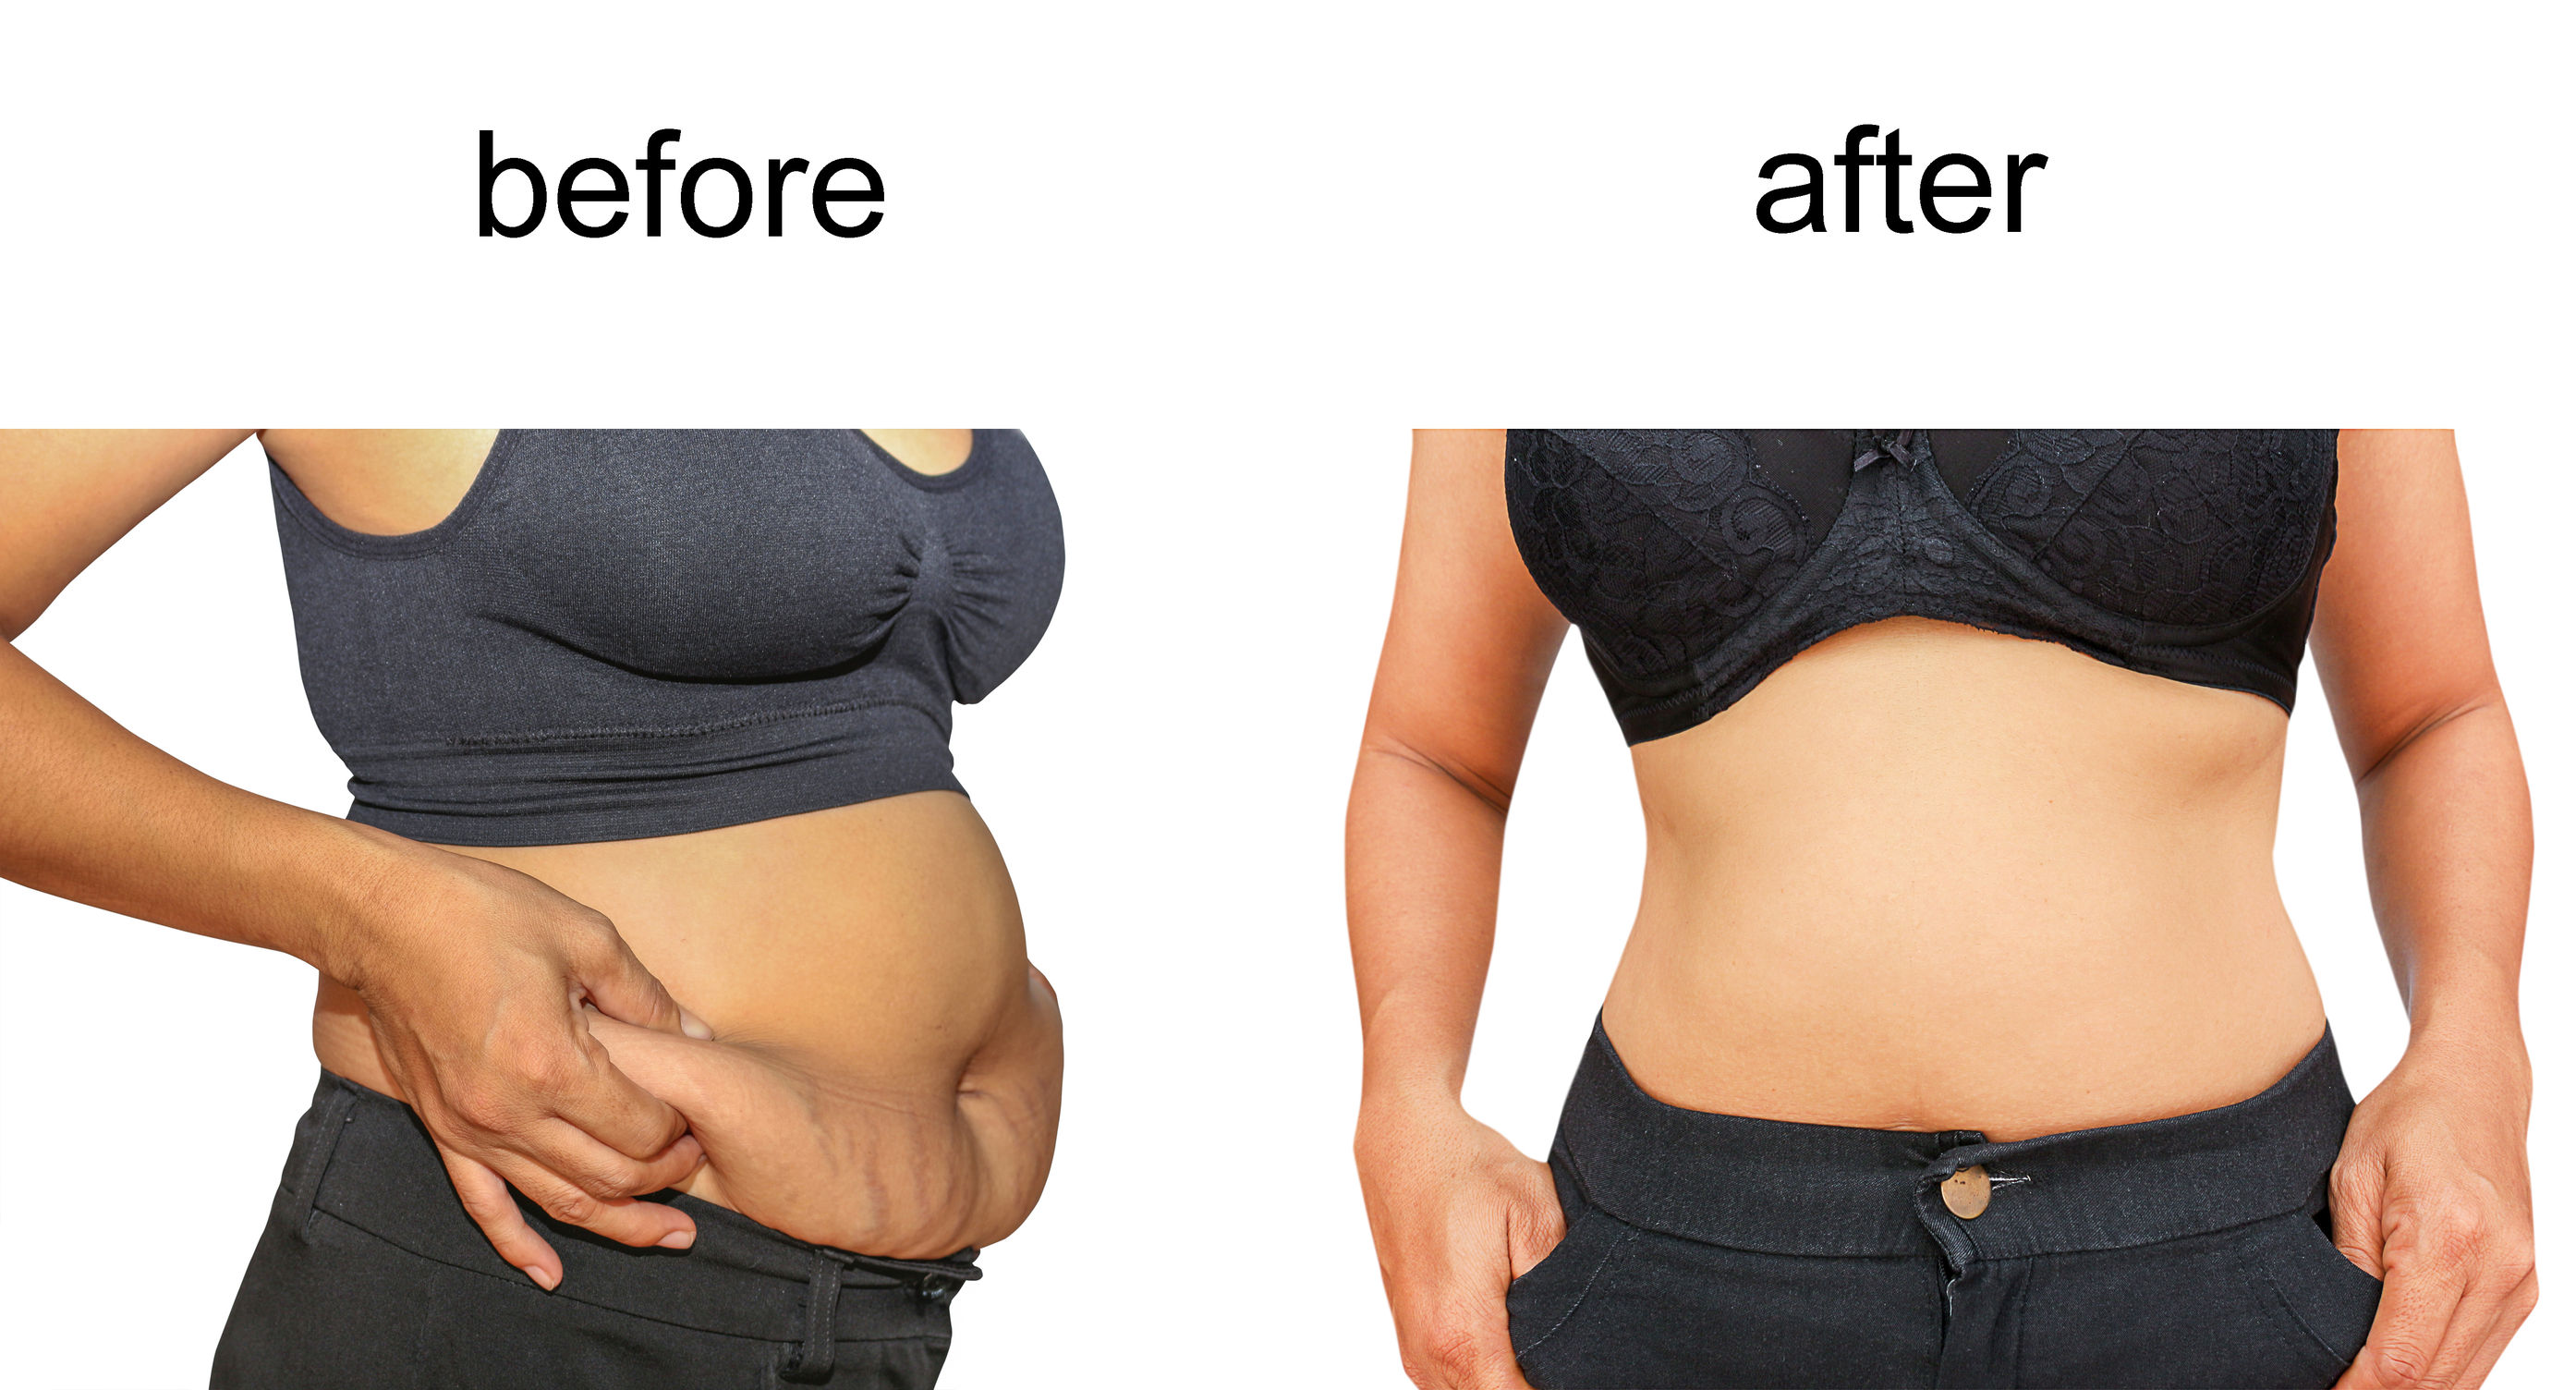 7. Liposuction